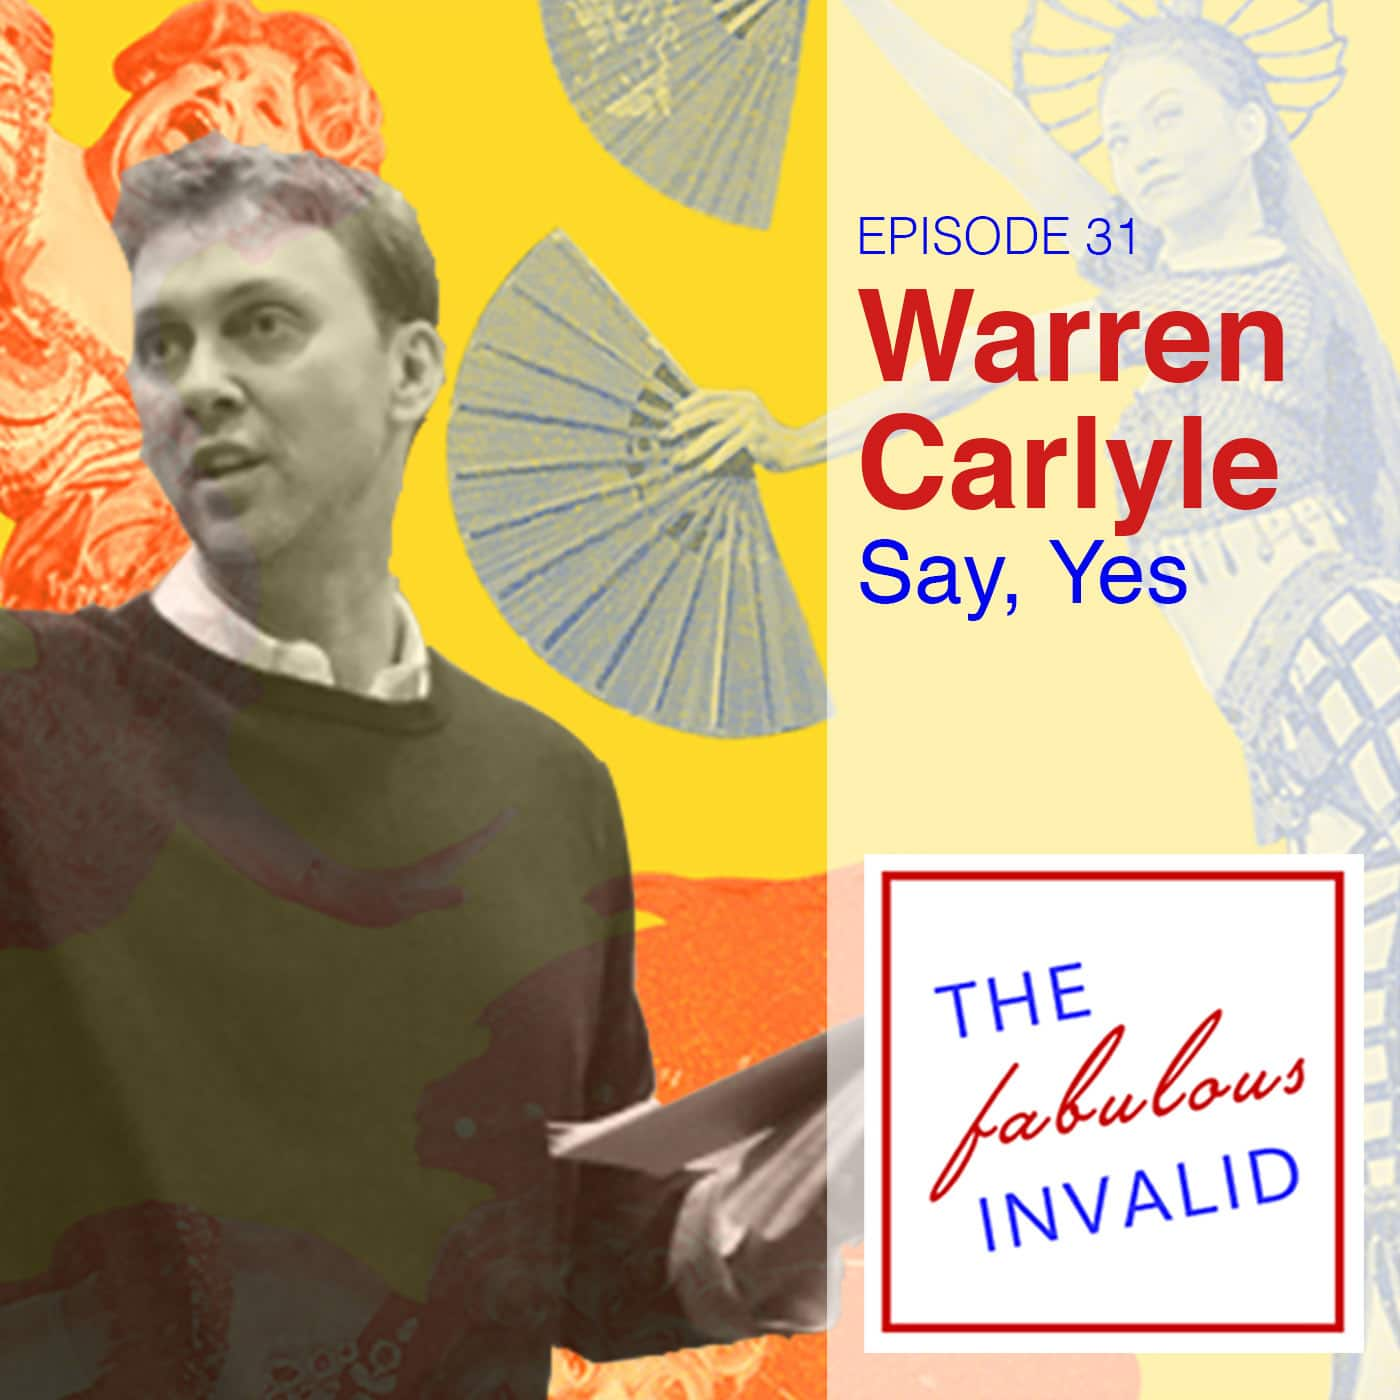 The Fabulous Invalid Ep 31 Warren Carlyle